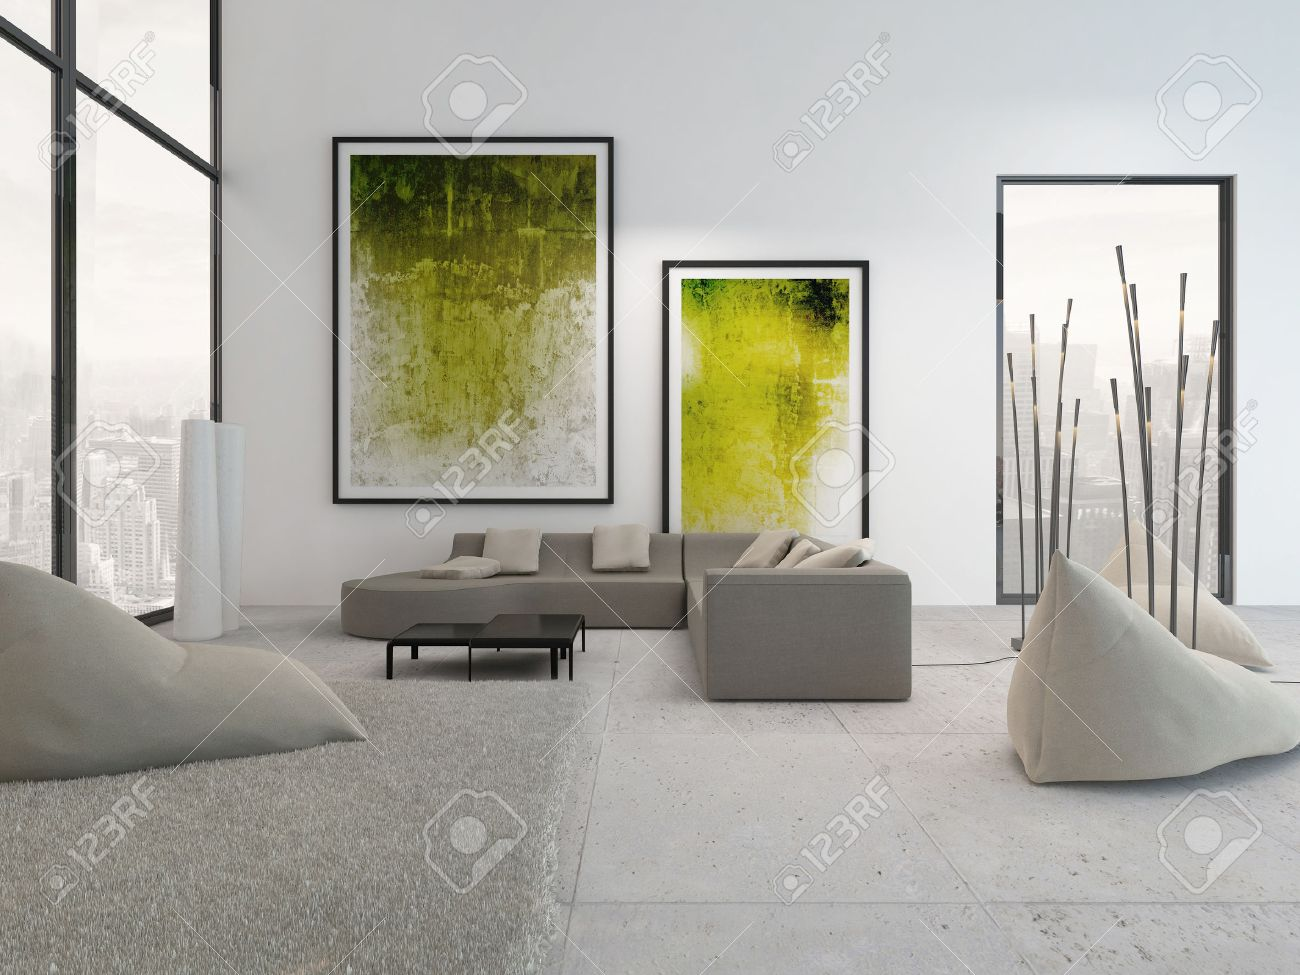 Modern Living Room Interior With Green Paintings On Wall Stock ...